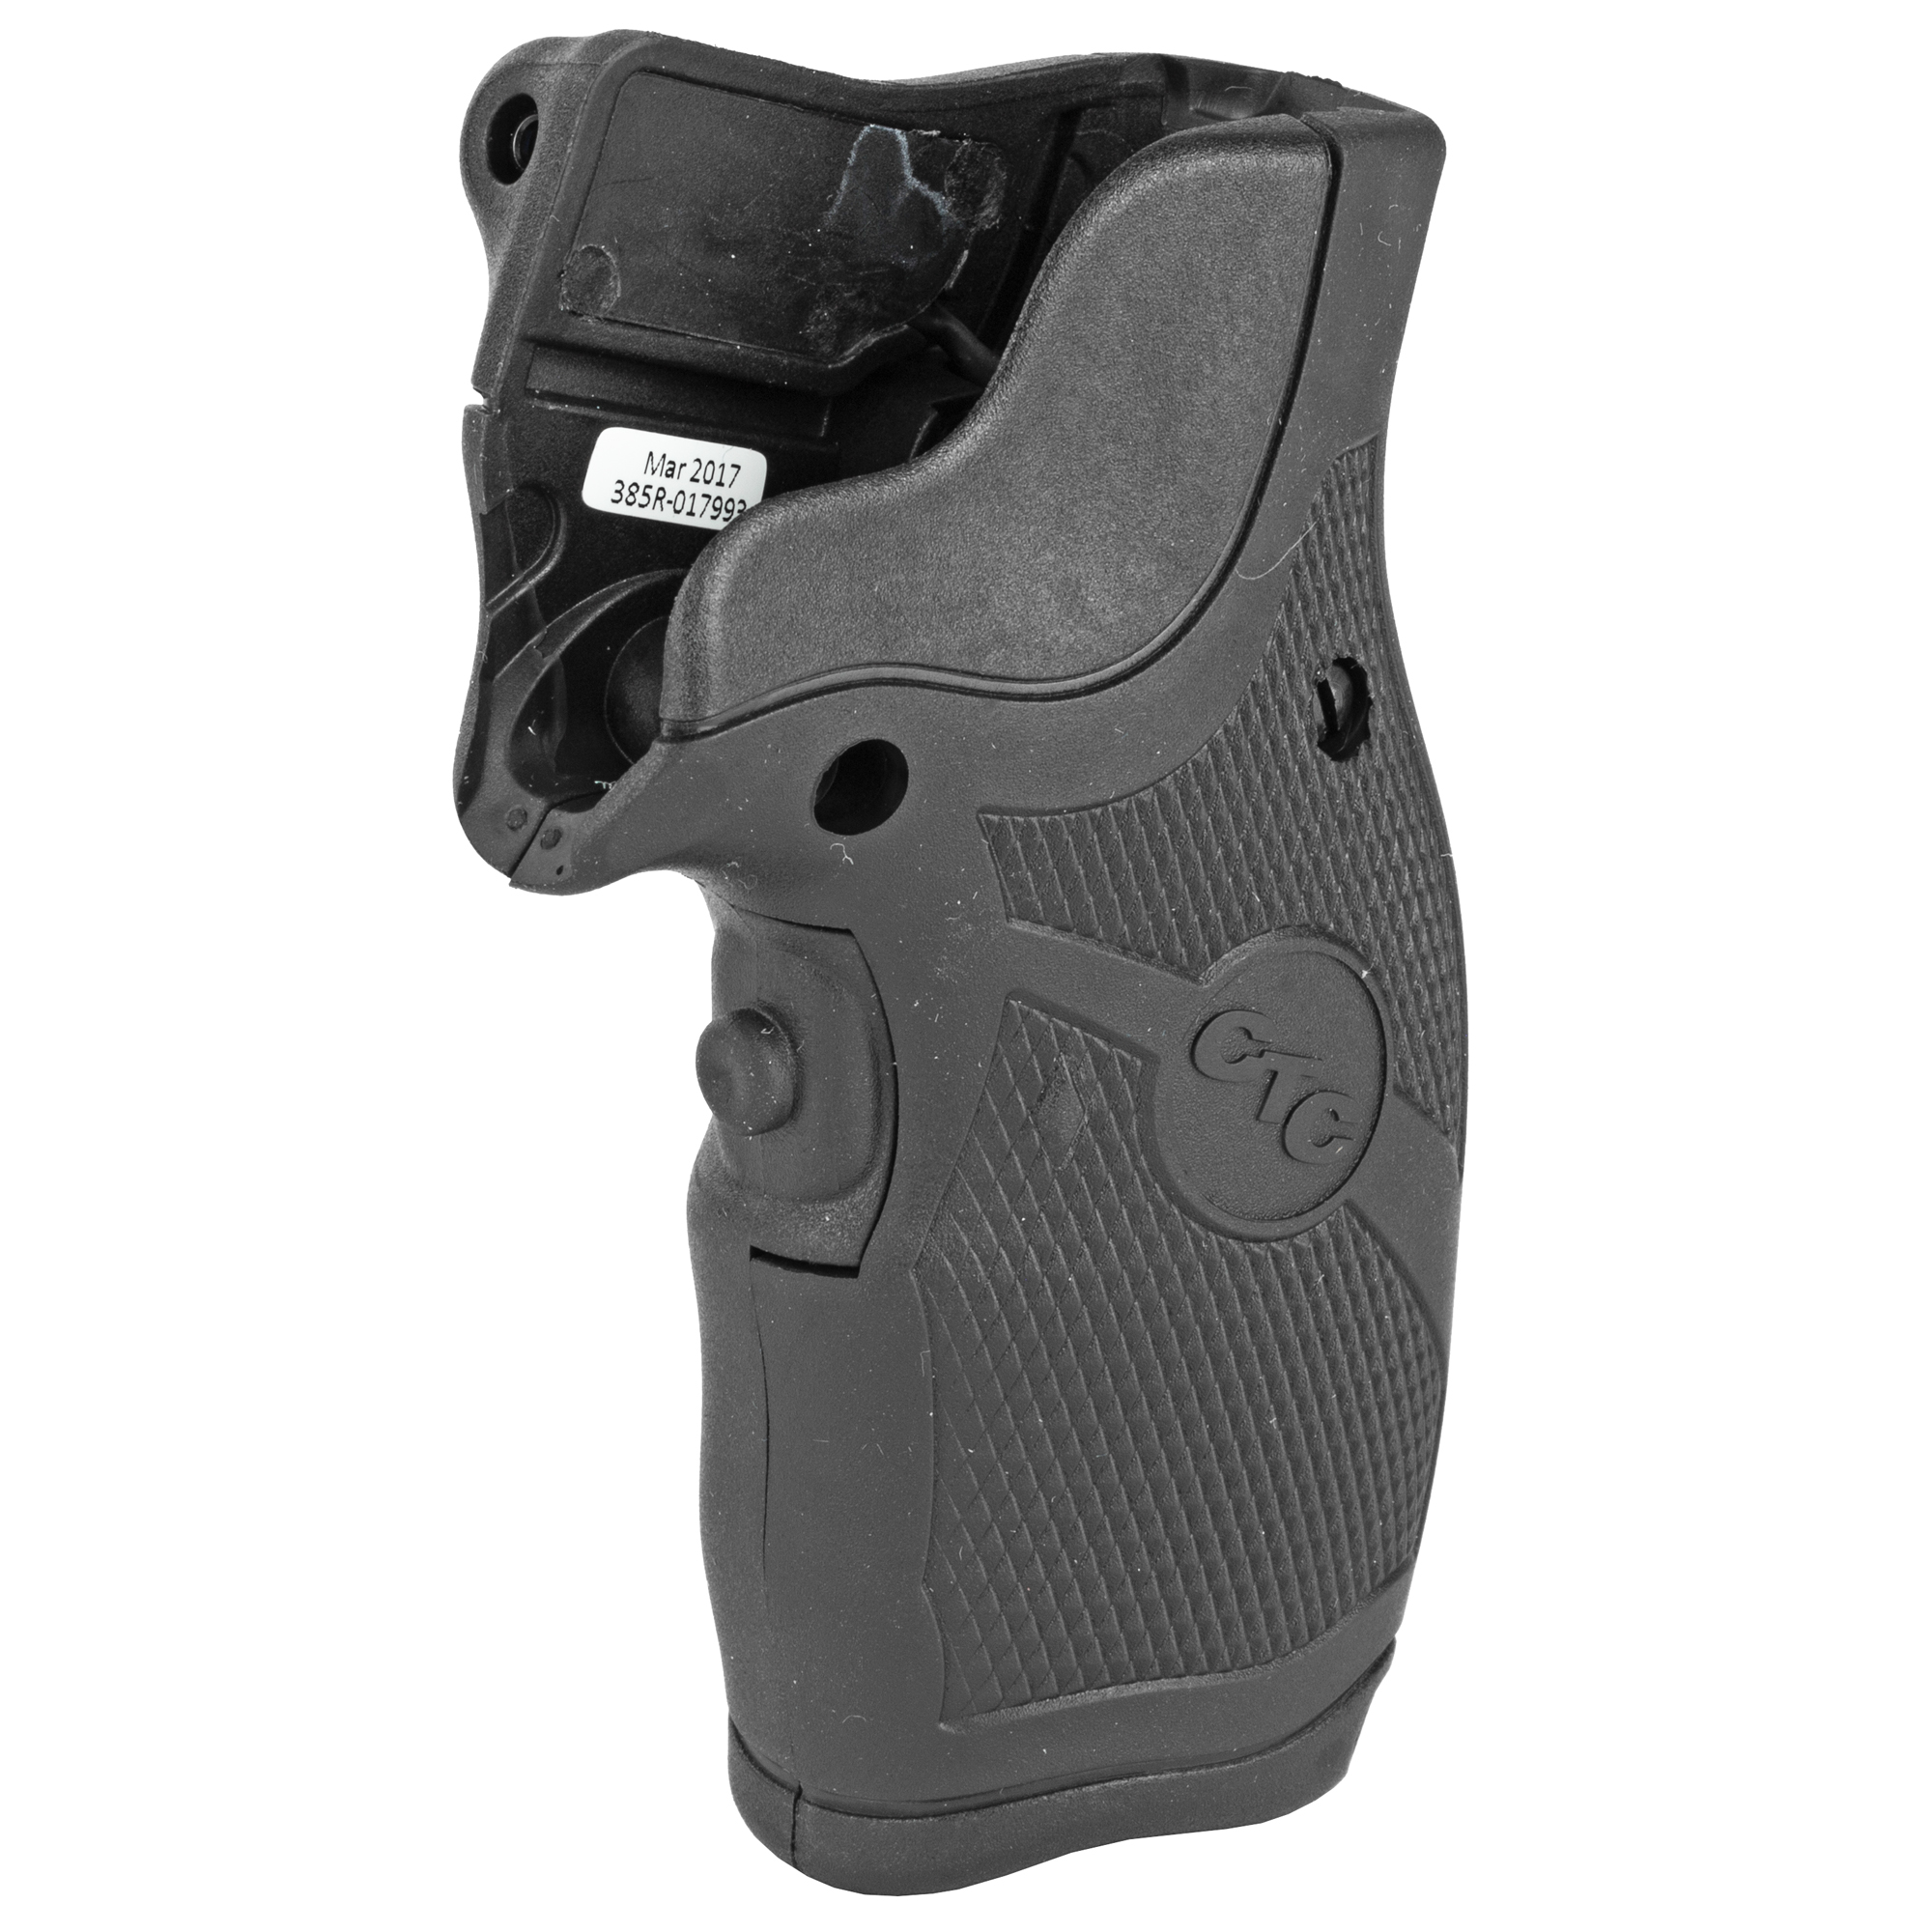 """LG-385 laser sight for Taurus Small Frame revolvers features a rubber overmold material for a more secure grip and reduced felt recoil. These Lasergrips(R) have an extended grip length over the LG-185"""" providing better control and increased accuracy. Front activation switch springs the laser to life when held in a natural firing grip."""